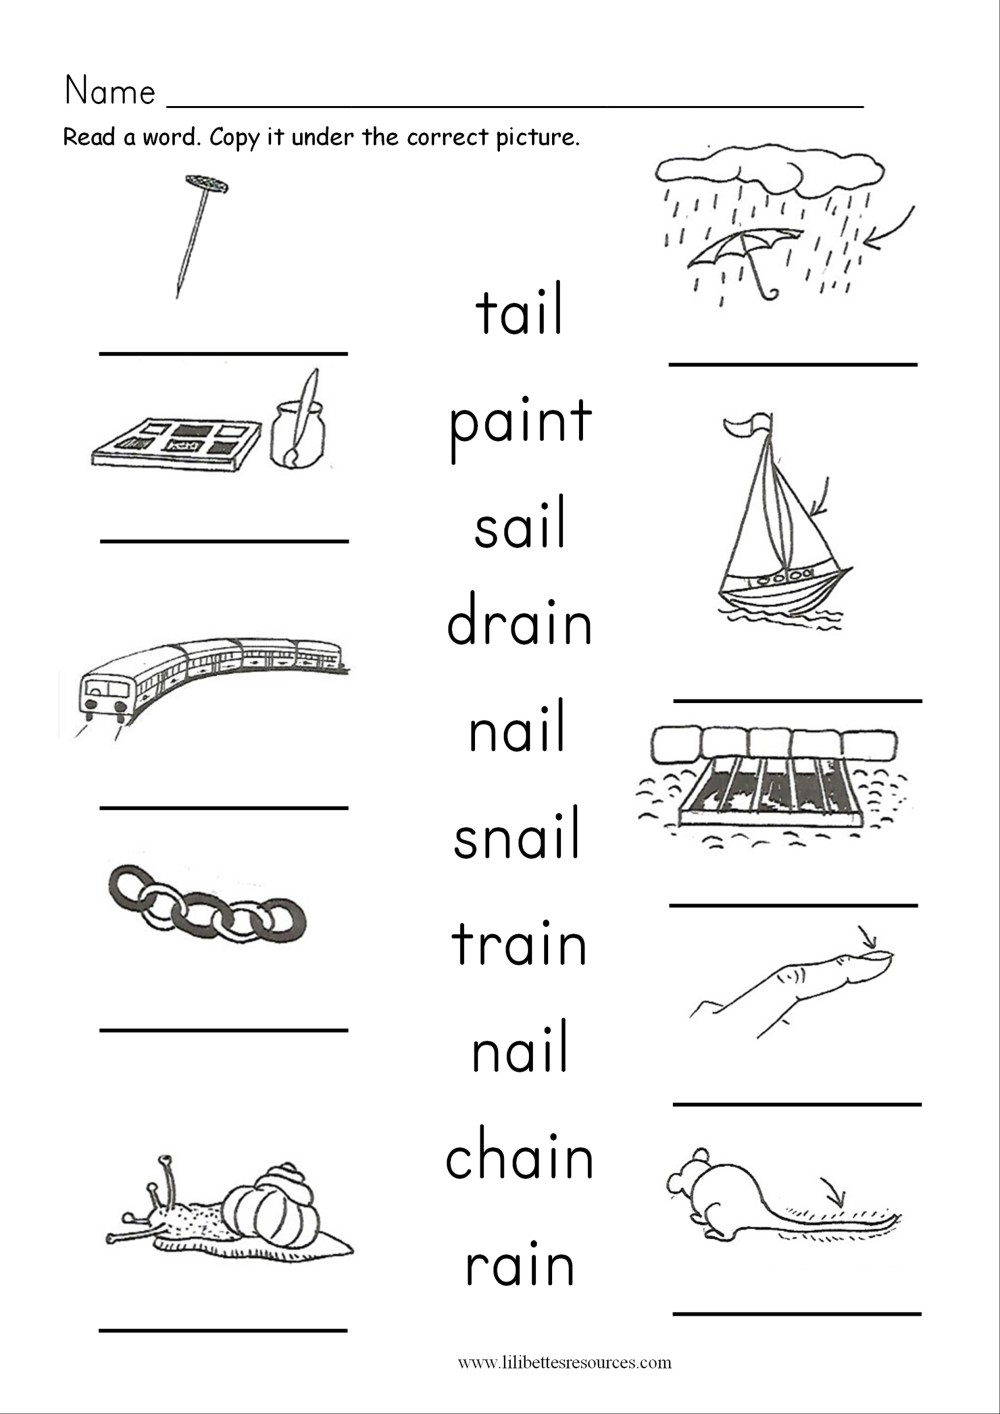 medium resolution of Phonics Ai Worksheets   Printable Worksheets and Activities for Teachers